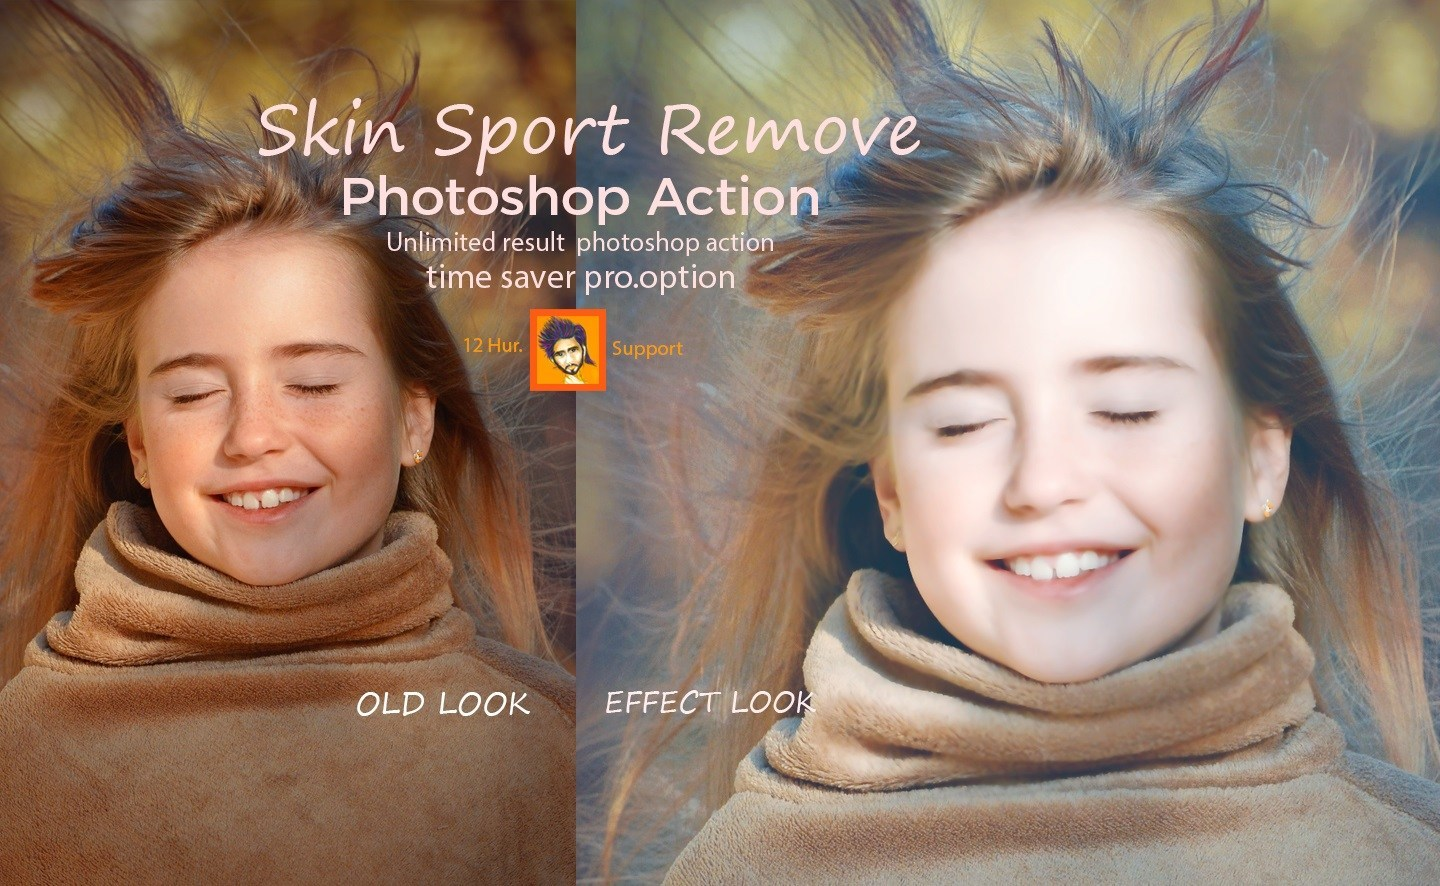 Skin Spot Remove Photoshop Action